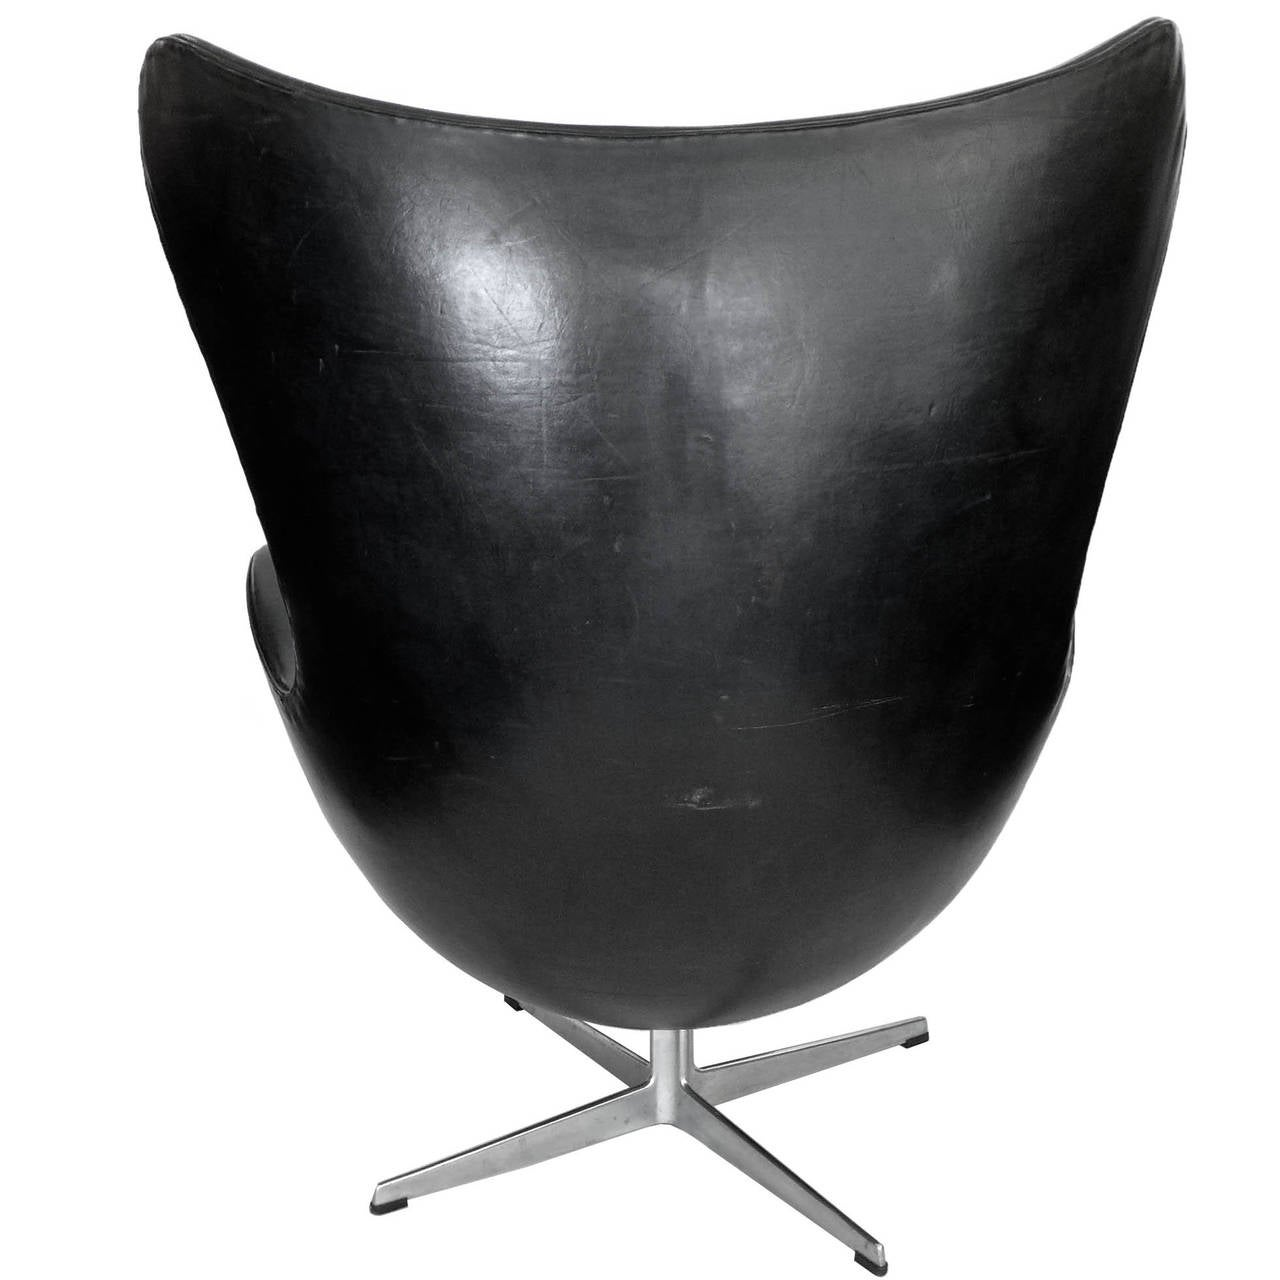 early egg chair and ottoman by arne jacobsen with original black leather at 1stdibs. Black Bedroom Furniture Sets. Home Design Ideas